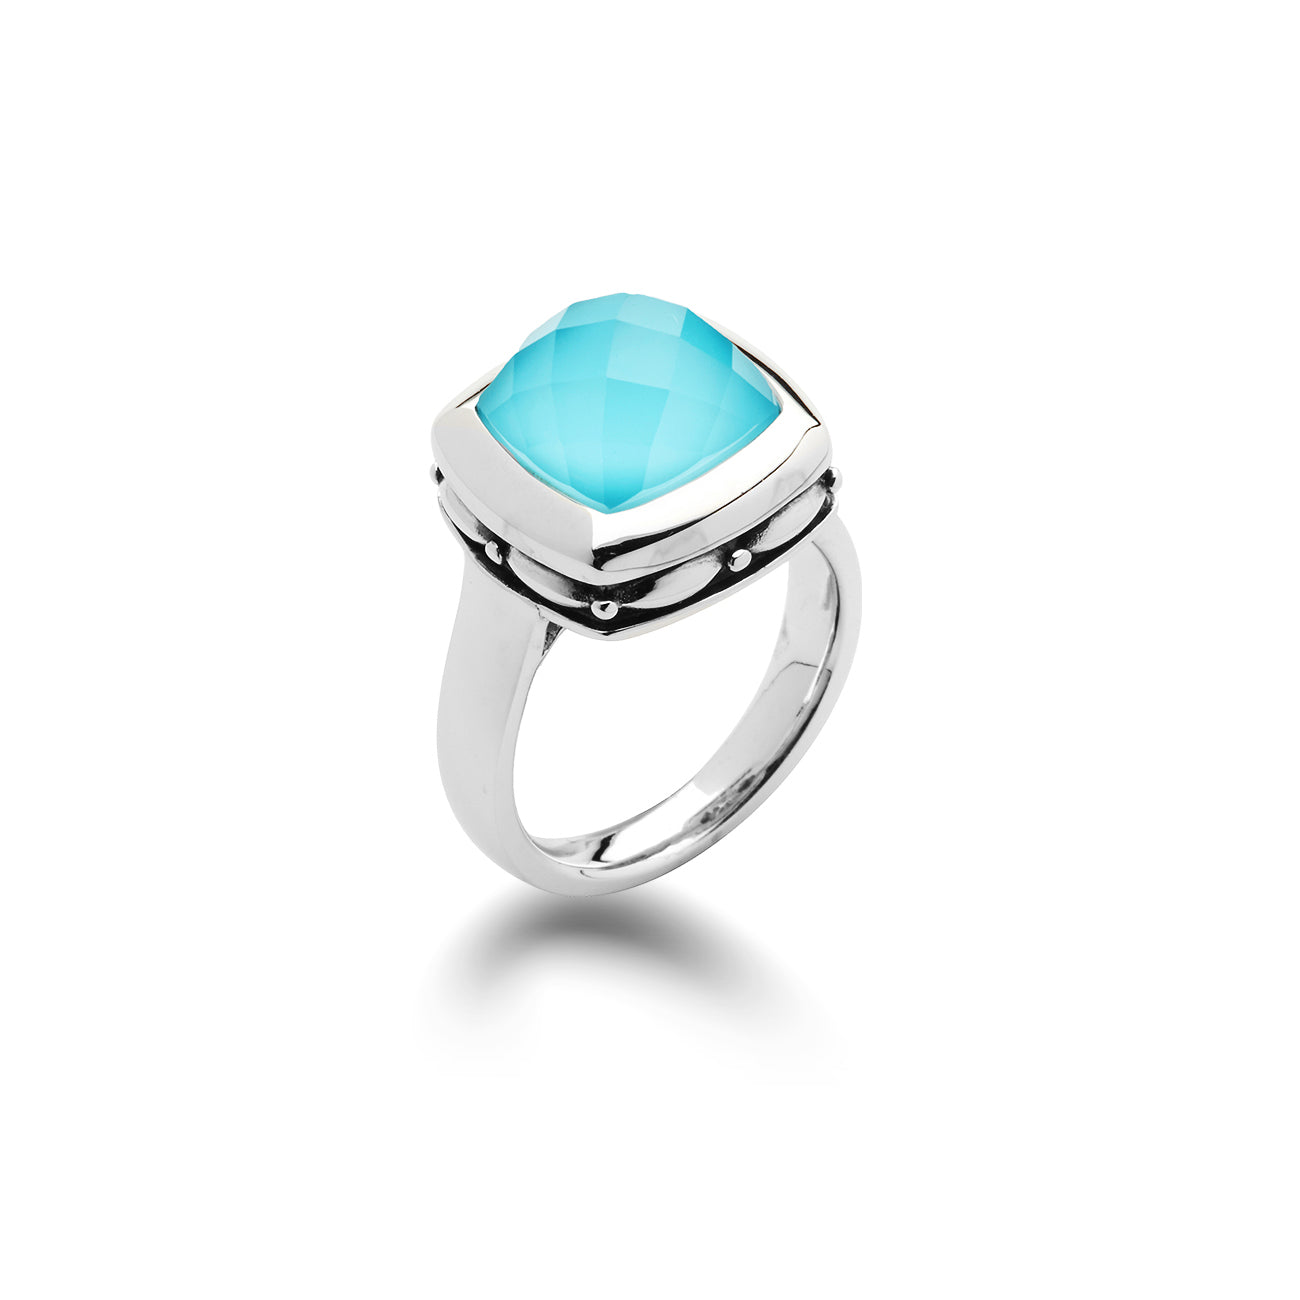 Turquoise and White Quartz Ring, Sterling Silver